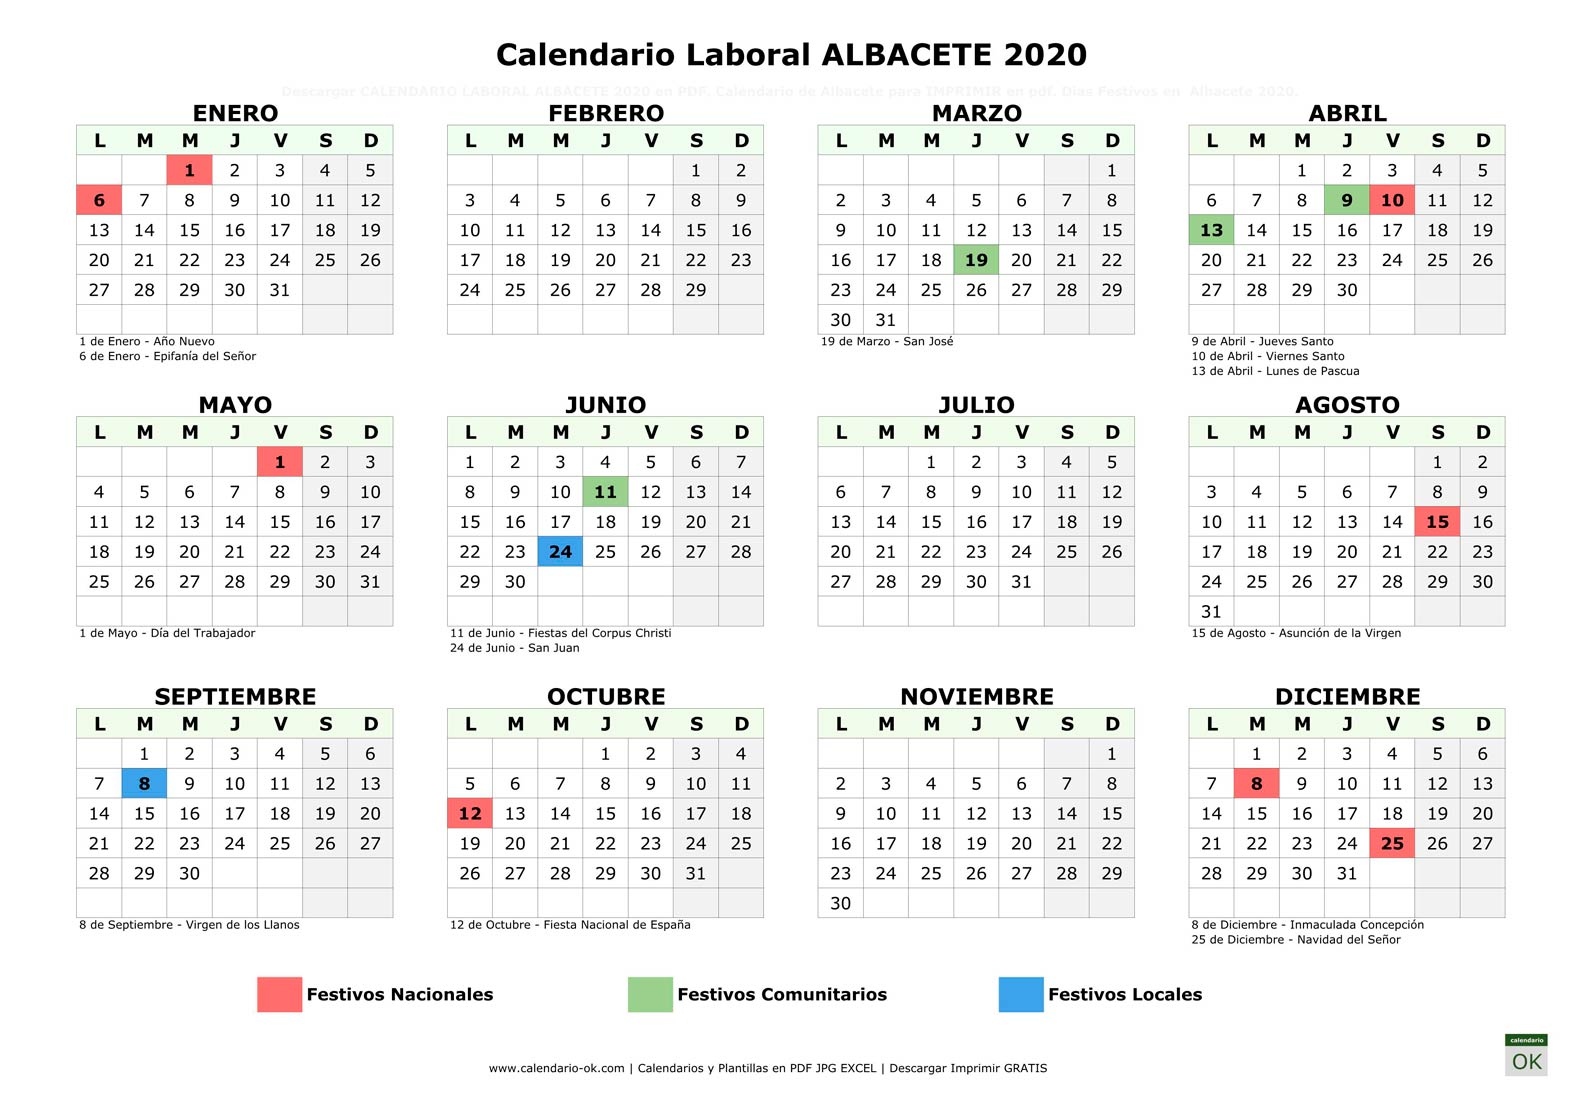 Calendario Laboral ALBACETE 2020 horizontal